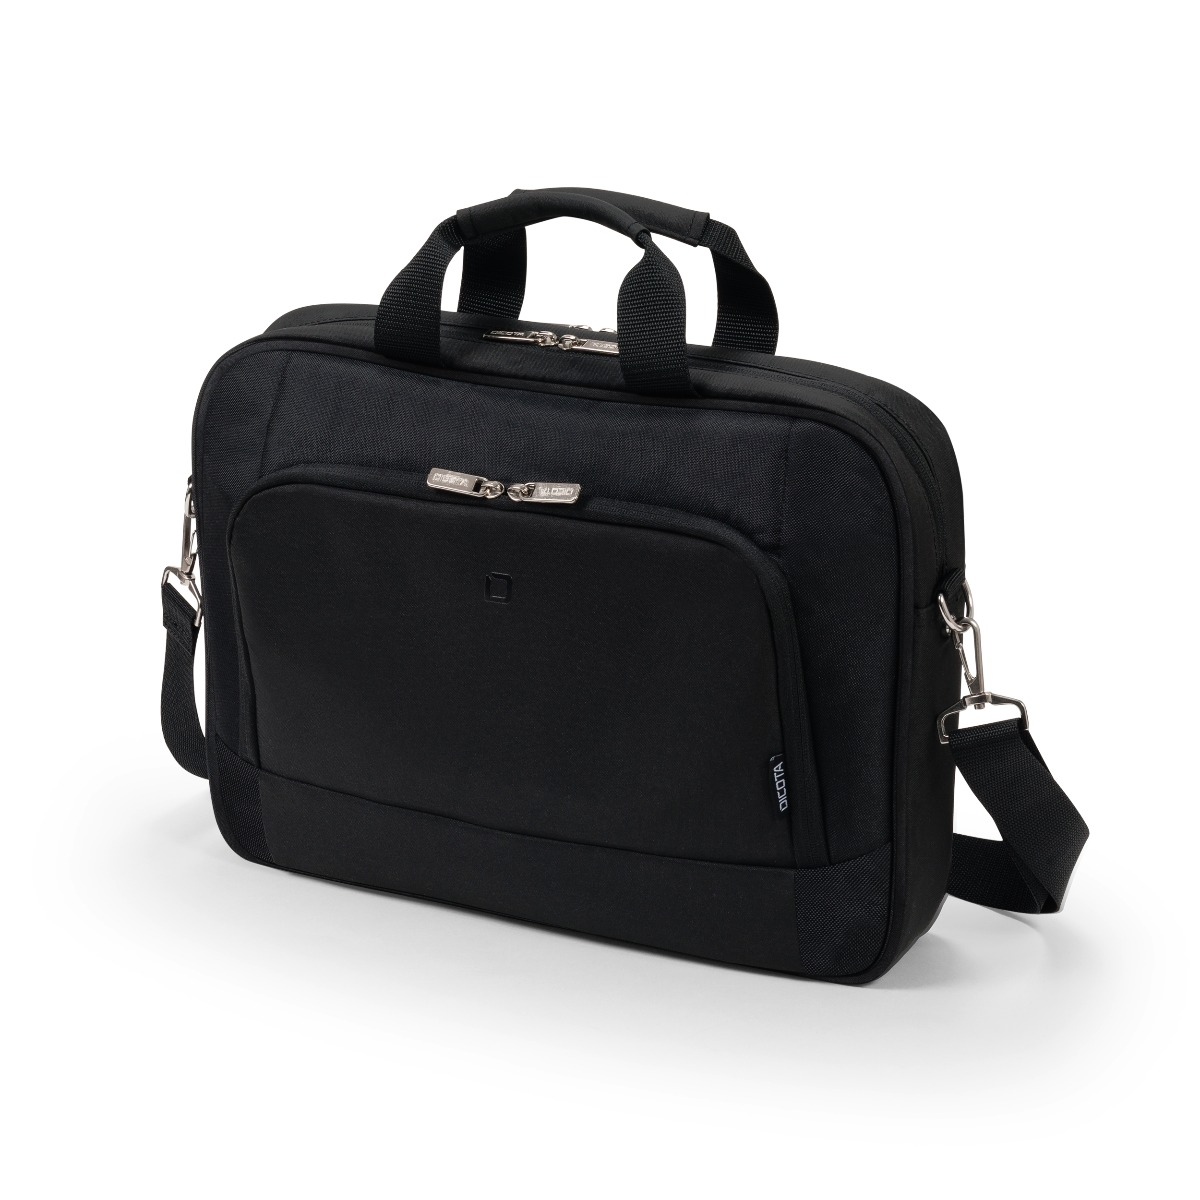 Dicota Top Traveller BASE 15-15.6 black